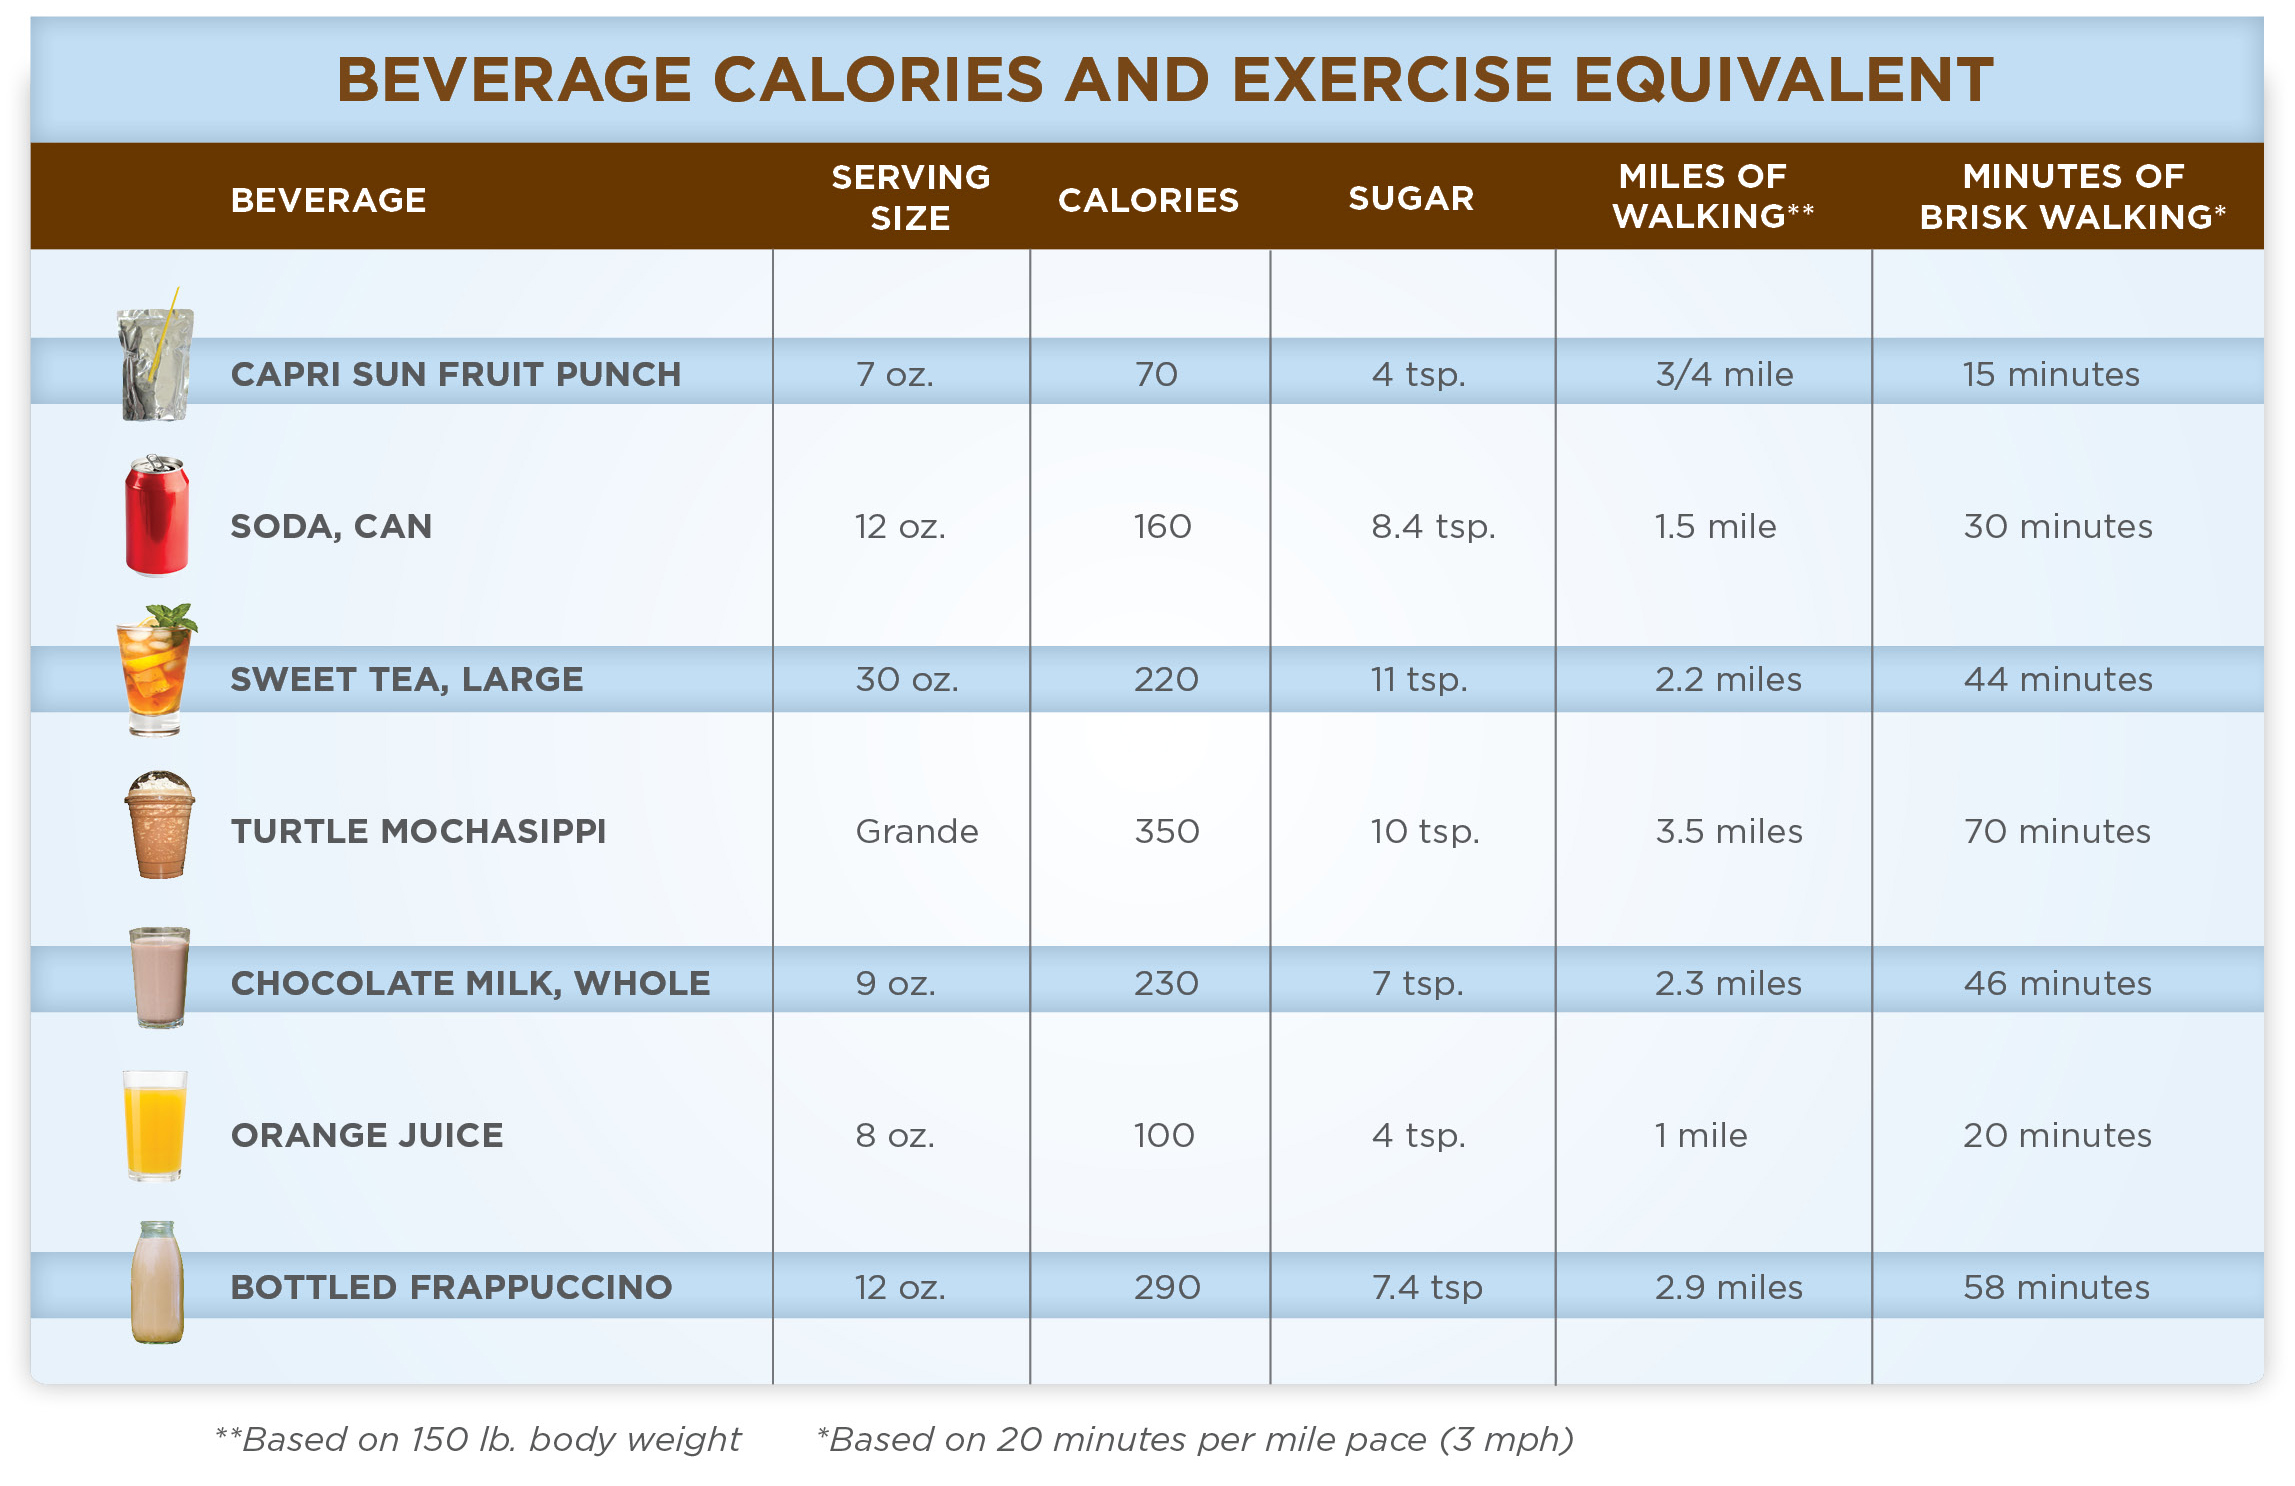 Make every calorie count our healthy lives unwanted sugar and calories could be lurking in your favorite drinks maximize your exercise routine and stay clear of these beverages check out the chart nvjuhfo Image collections